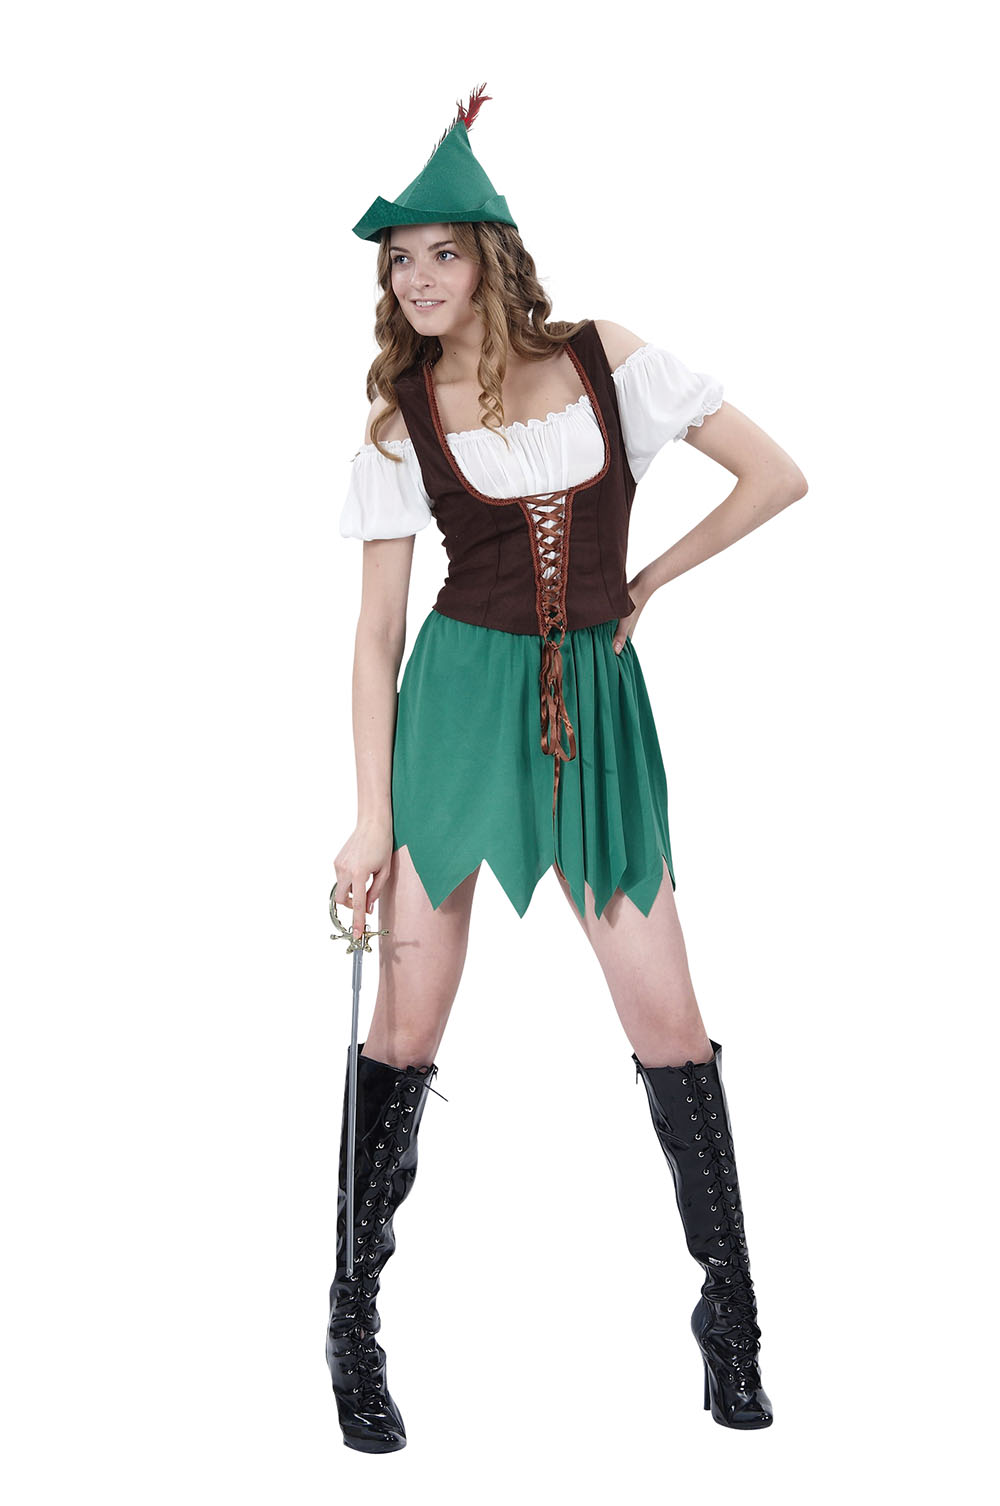 Robin Hood Lady - Womens Ladies Character Fancy Dress Costume - Party Outfit  sc 1 st  eBay & Robin Hood Lady - Womens Ladies Character Fancy Dress Costume ...